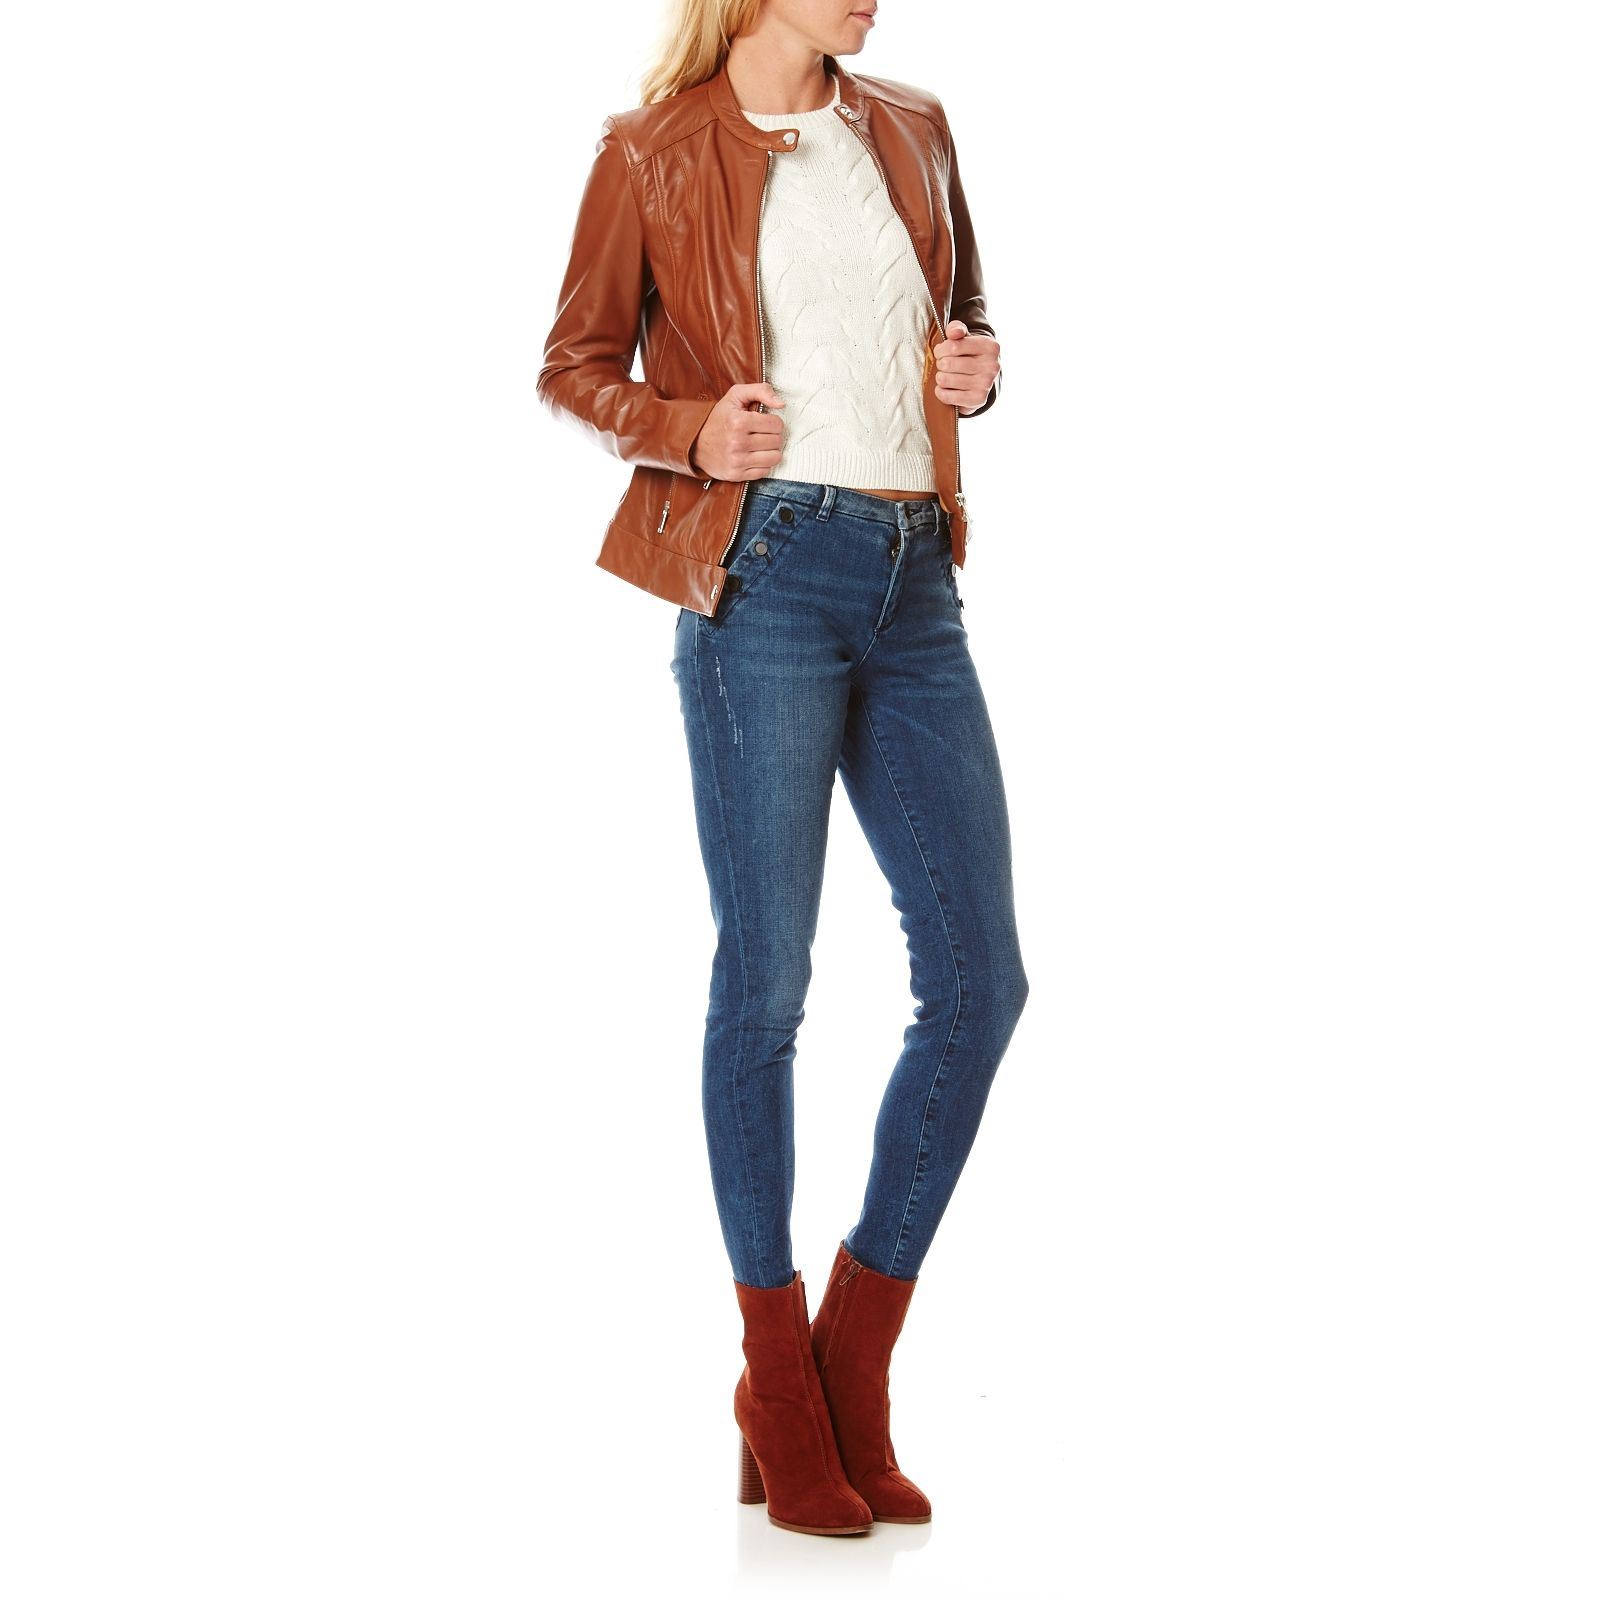 sneakers for cheap d8d87 70709 Chyston Cuir Celeste - Giacca biker in pelle - cognac ...